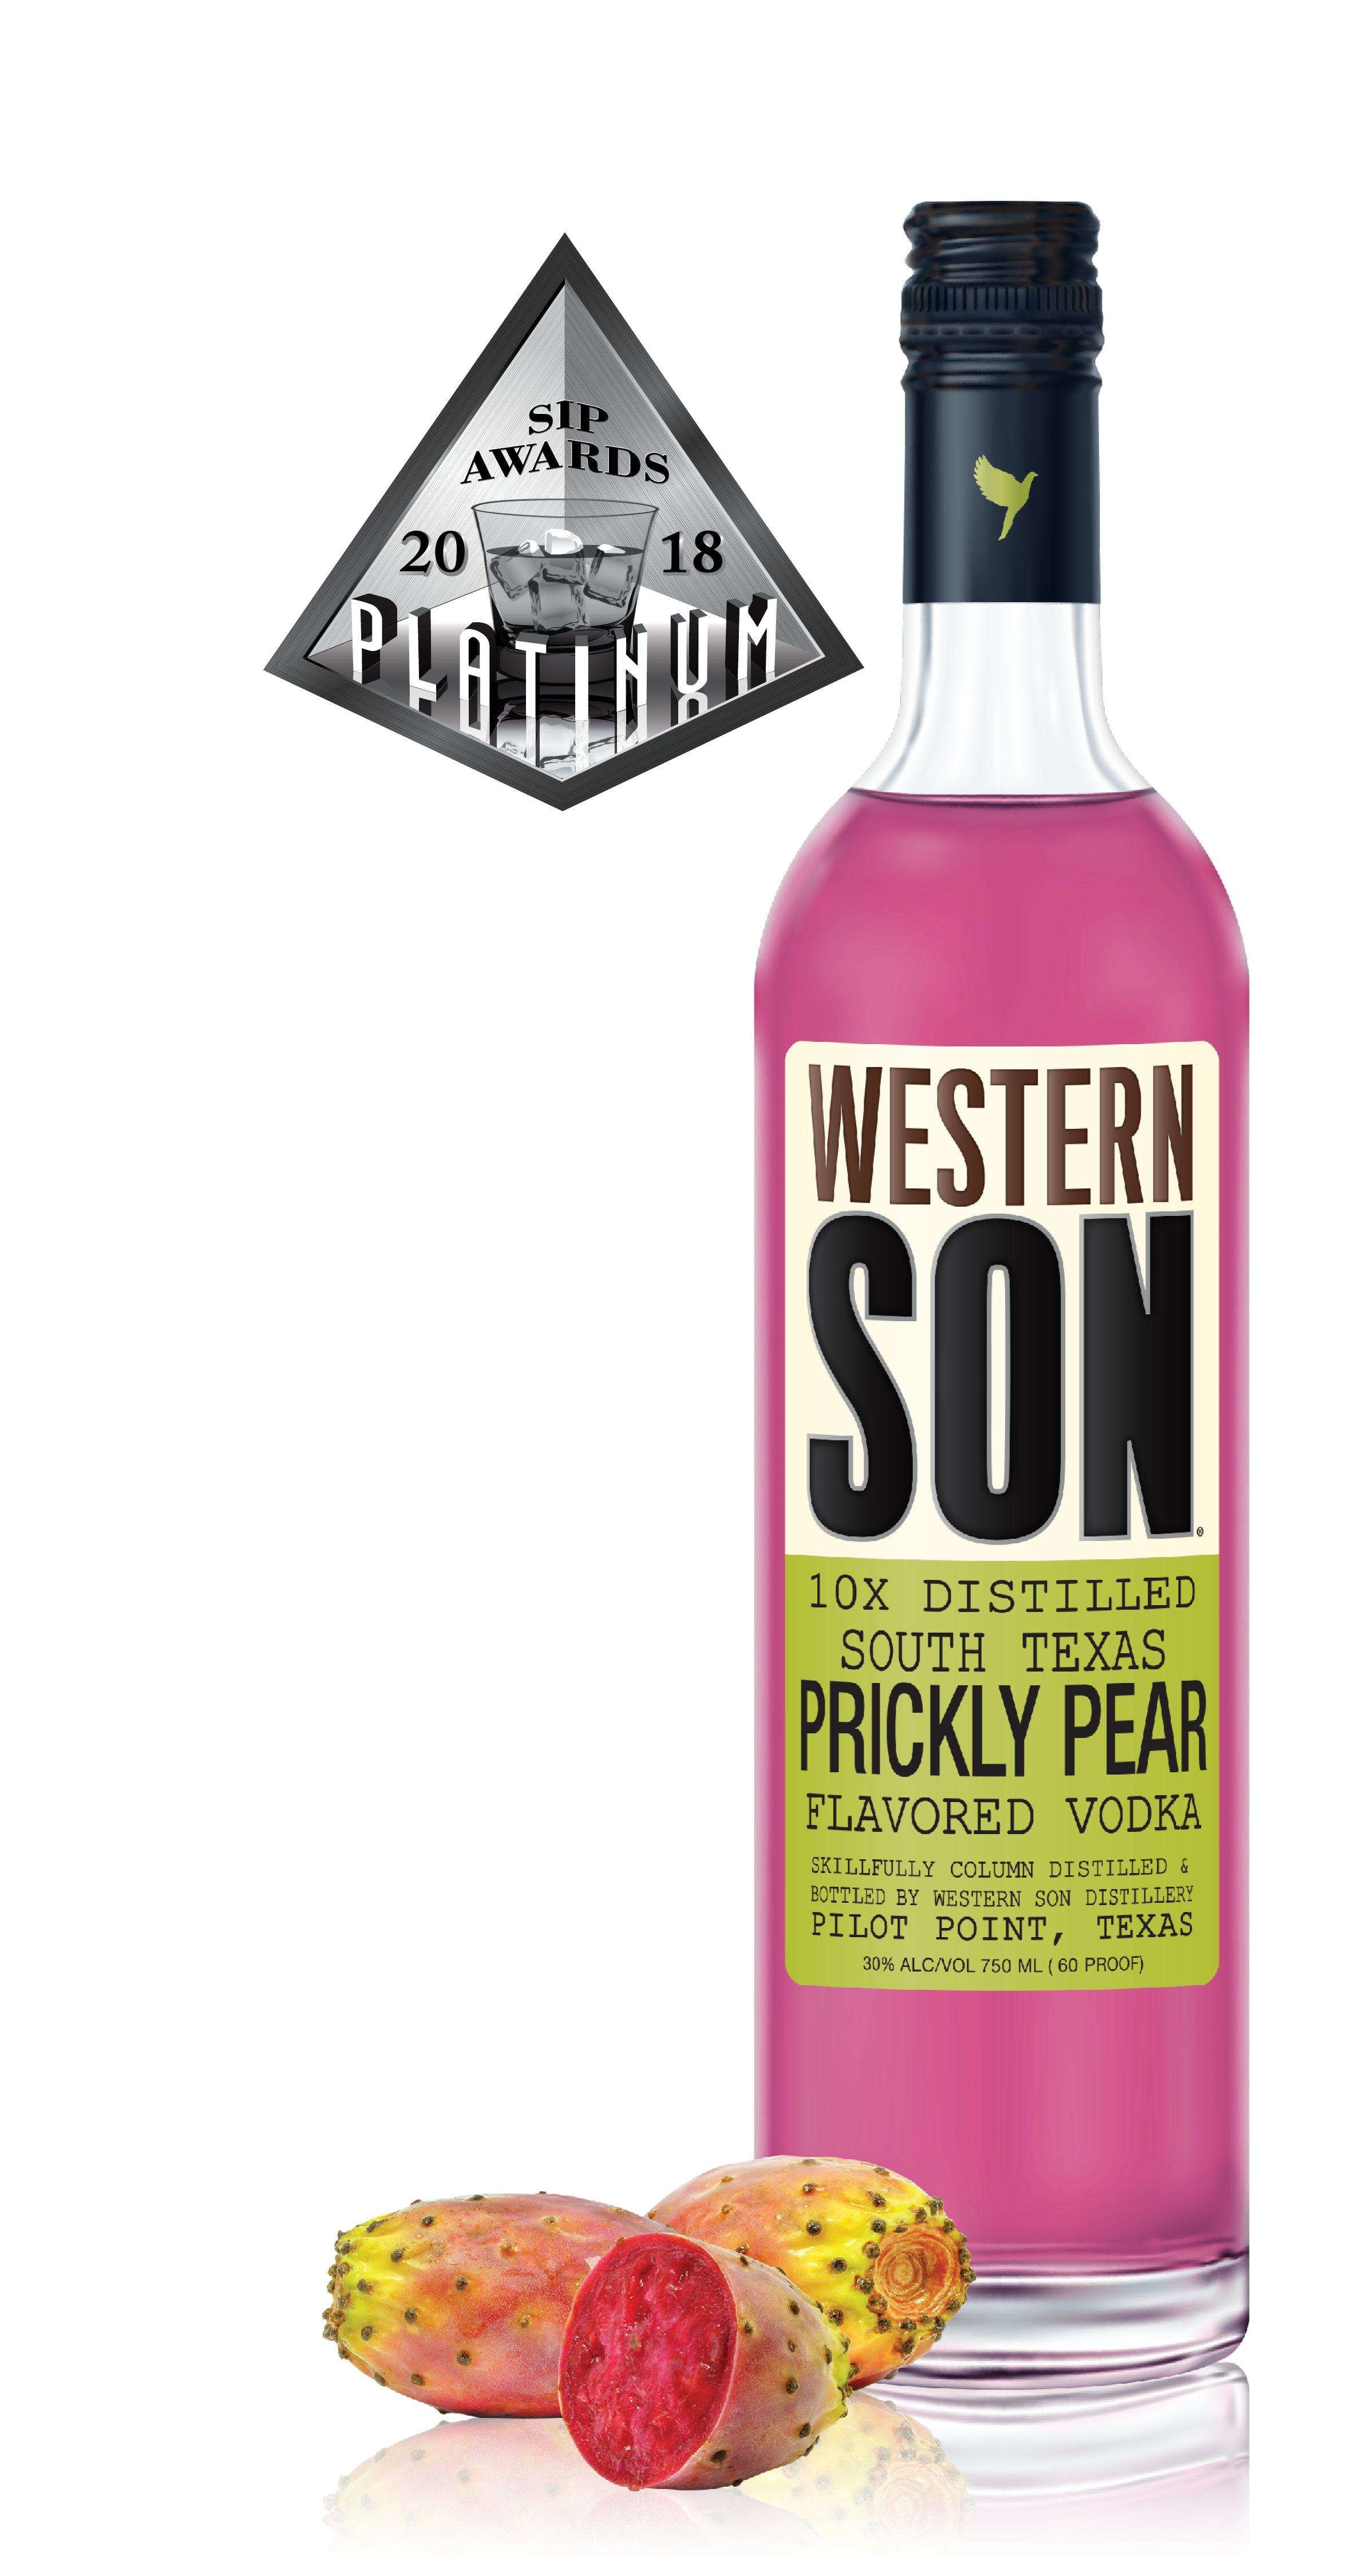 PRICKLY PEAR - Juicy and lush freshly picked cactus fruit that finishes semi-sweet and lightly tart with teases of wild strawberry, kiwi, and melon.Click for recipes